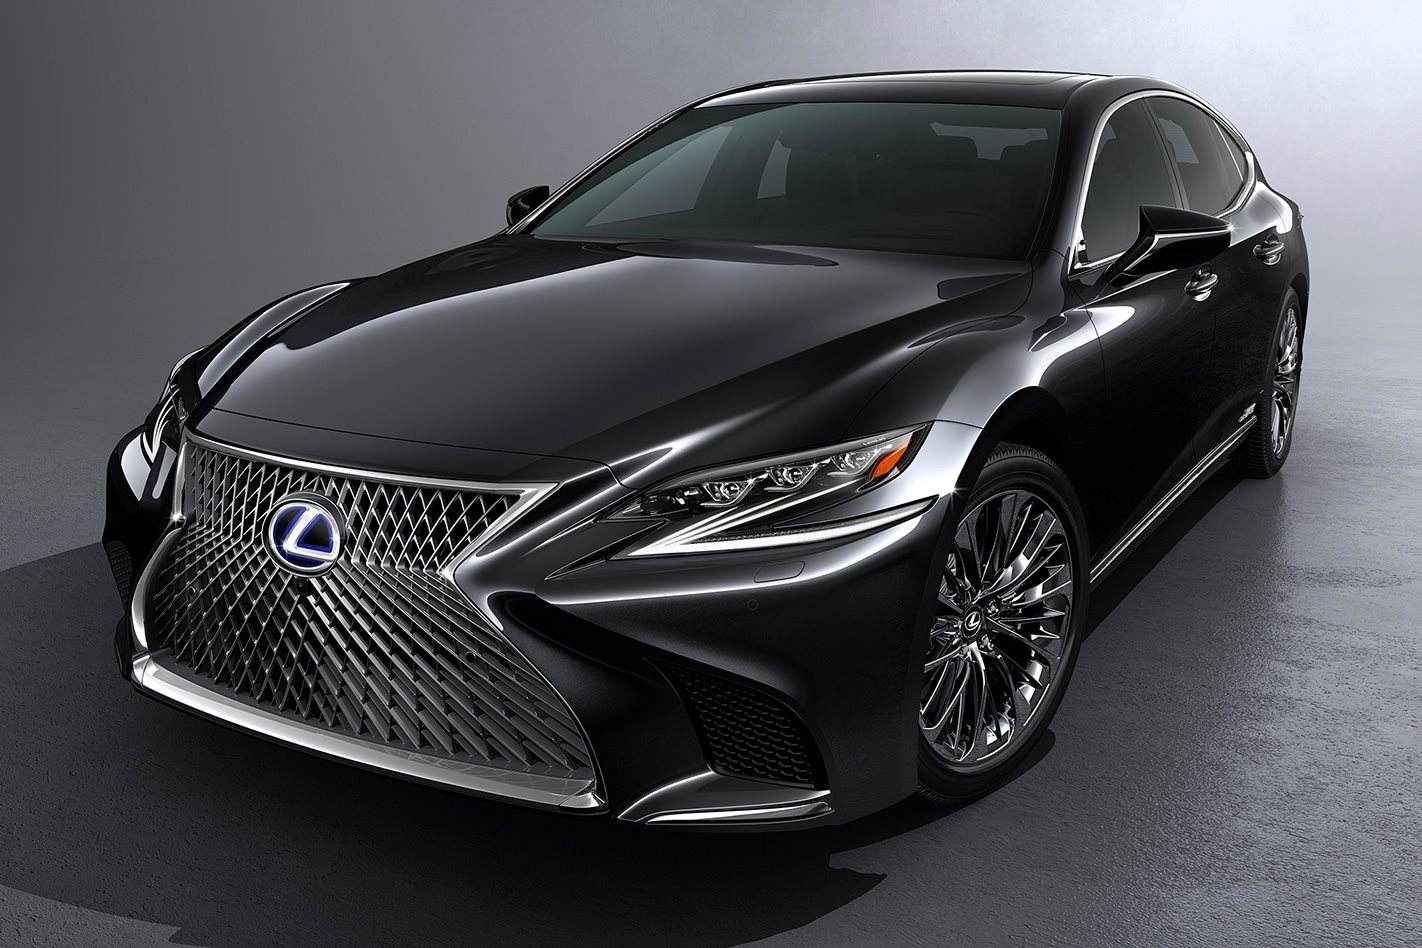 2017 geneva motor show lexus ls 500h revealed. Black Bedroom Furniture Sets. Home Design Ideas